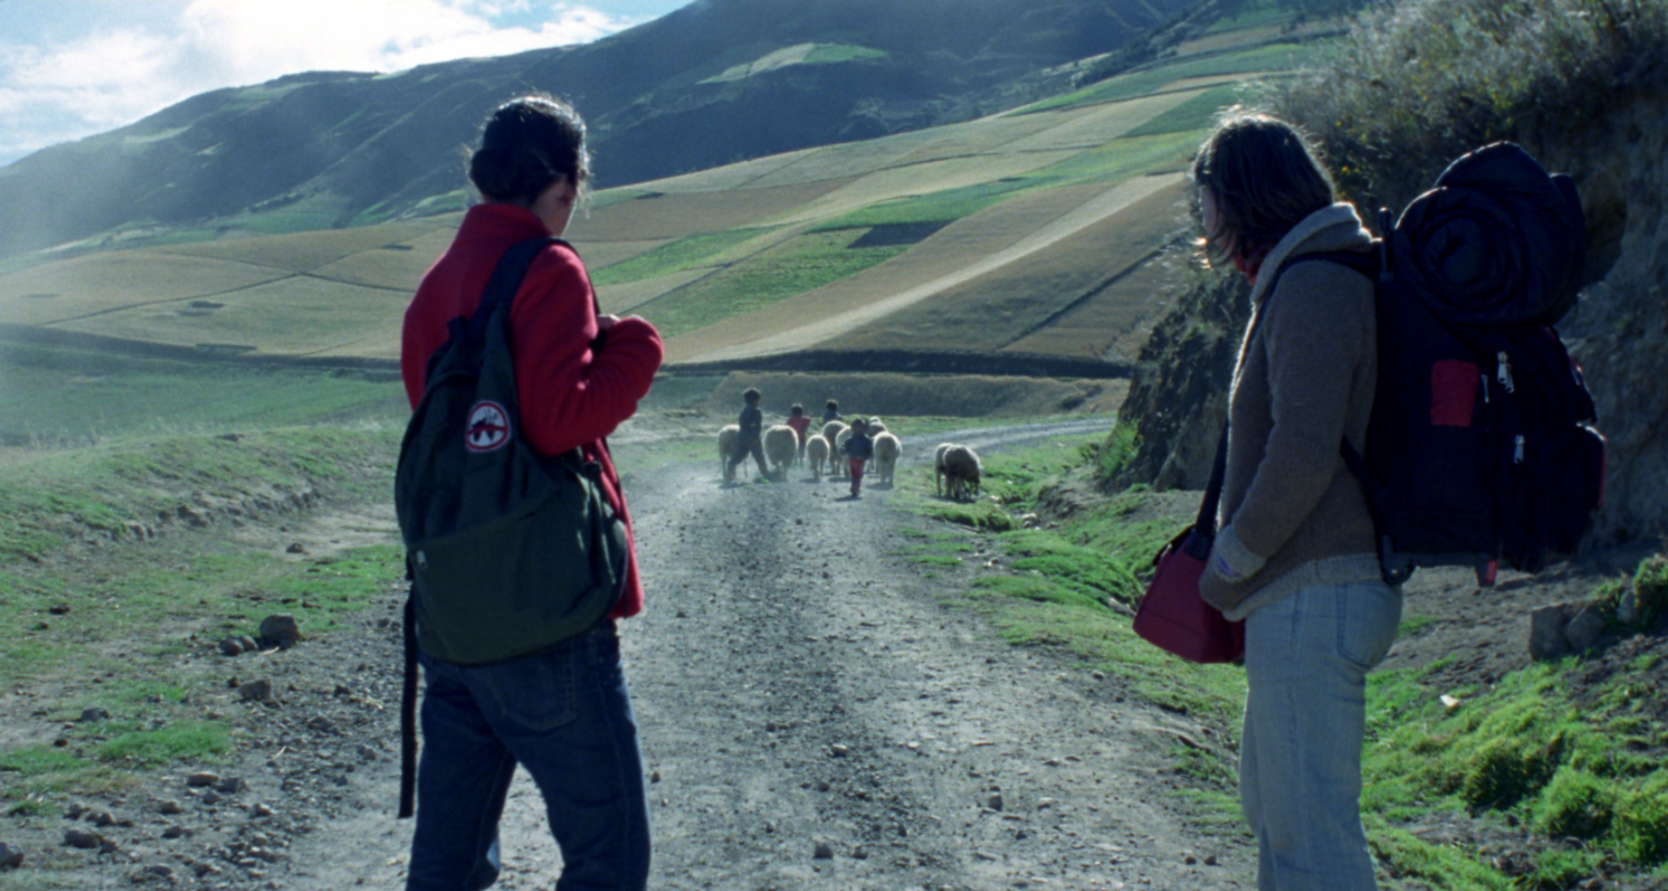 Two hikers observe a small herd of sheep and several children walking down a dusty road